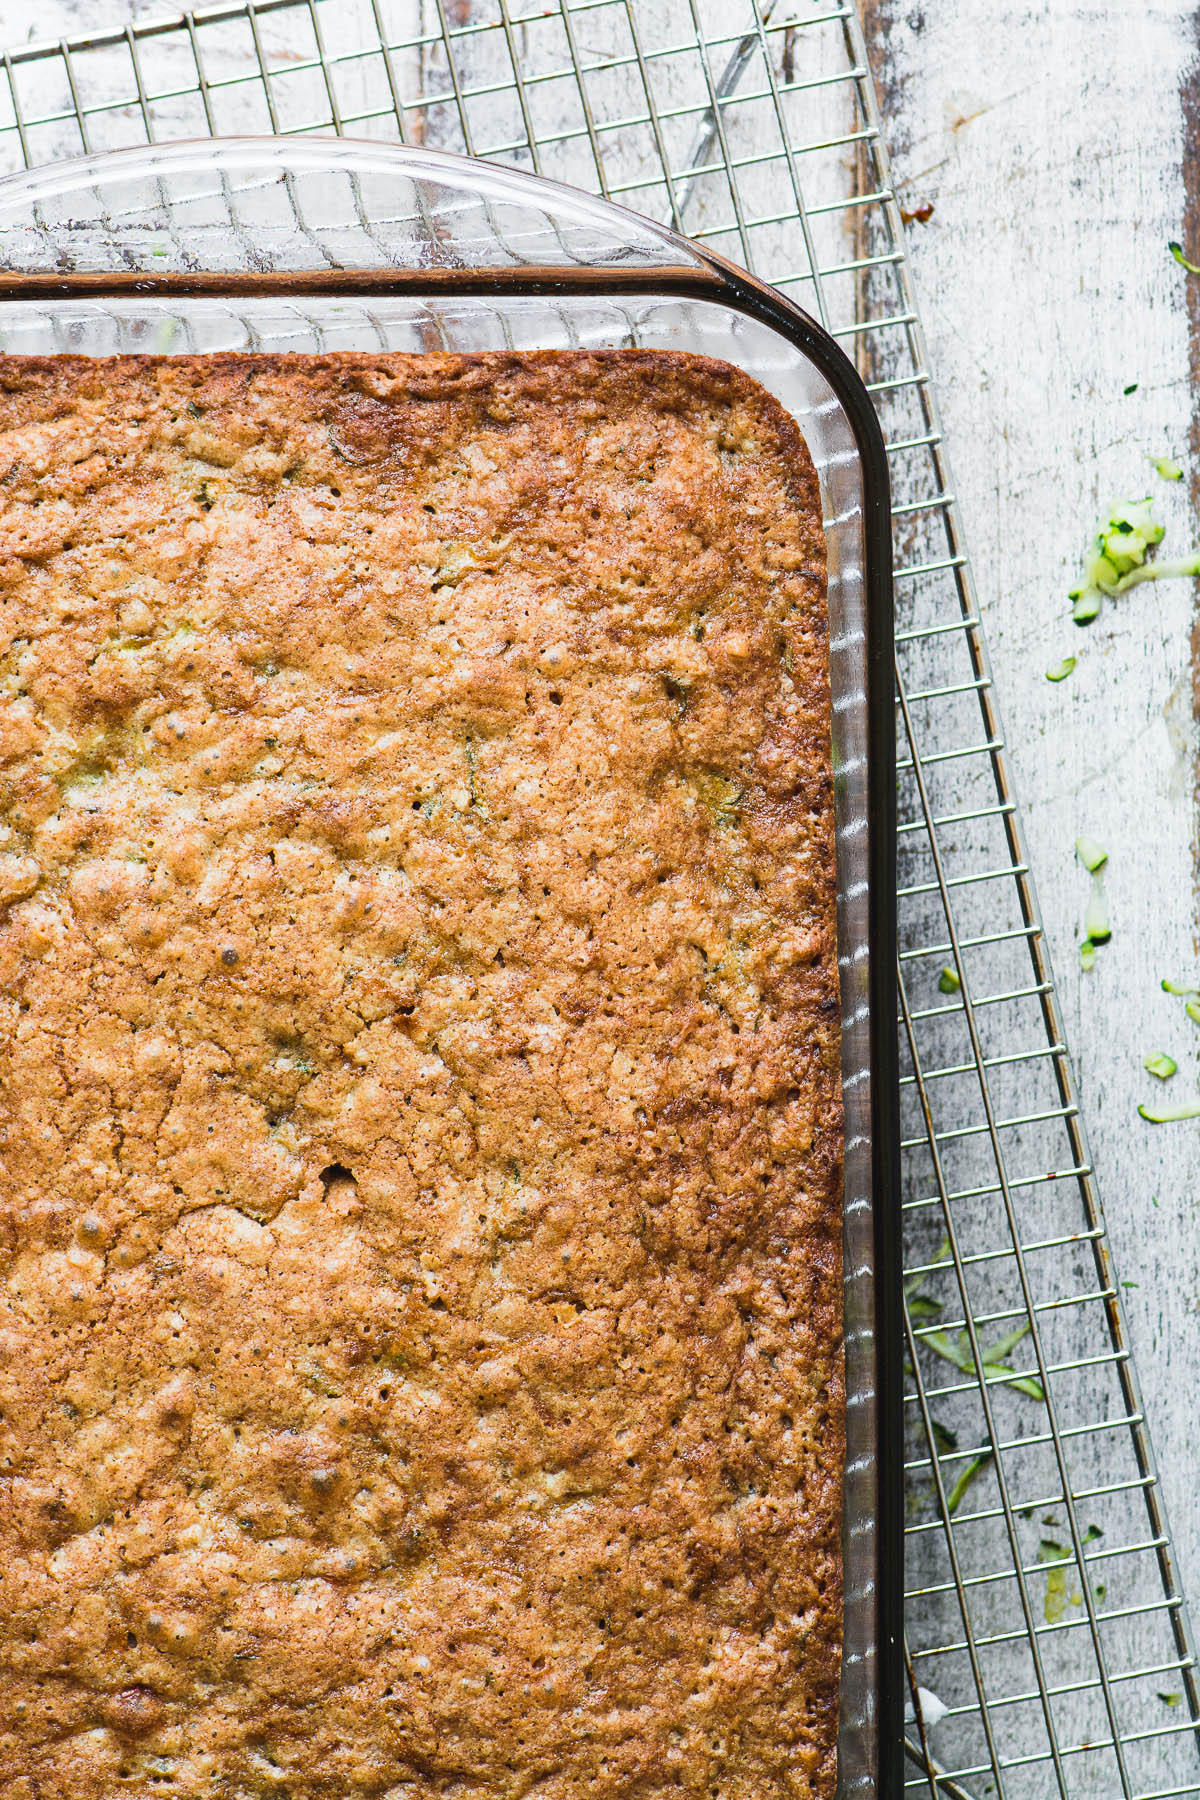 Old fashioned zucchini cake cooling on a rack